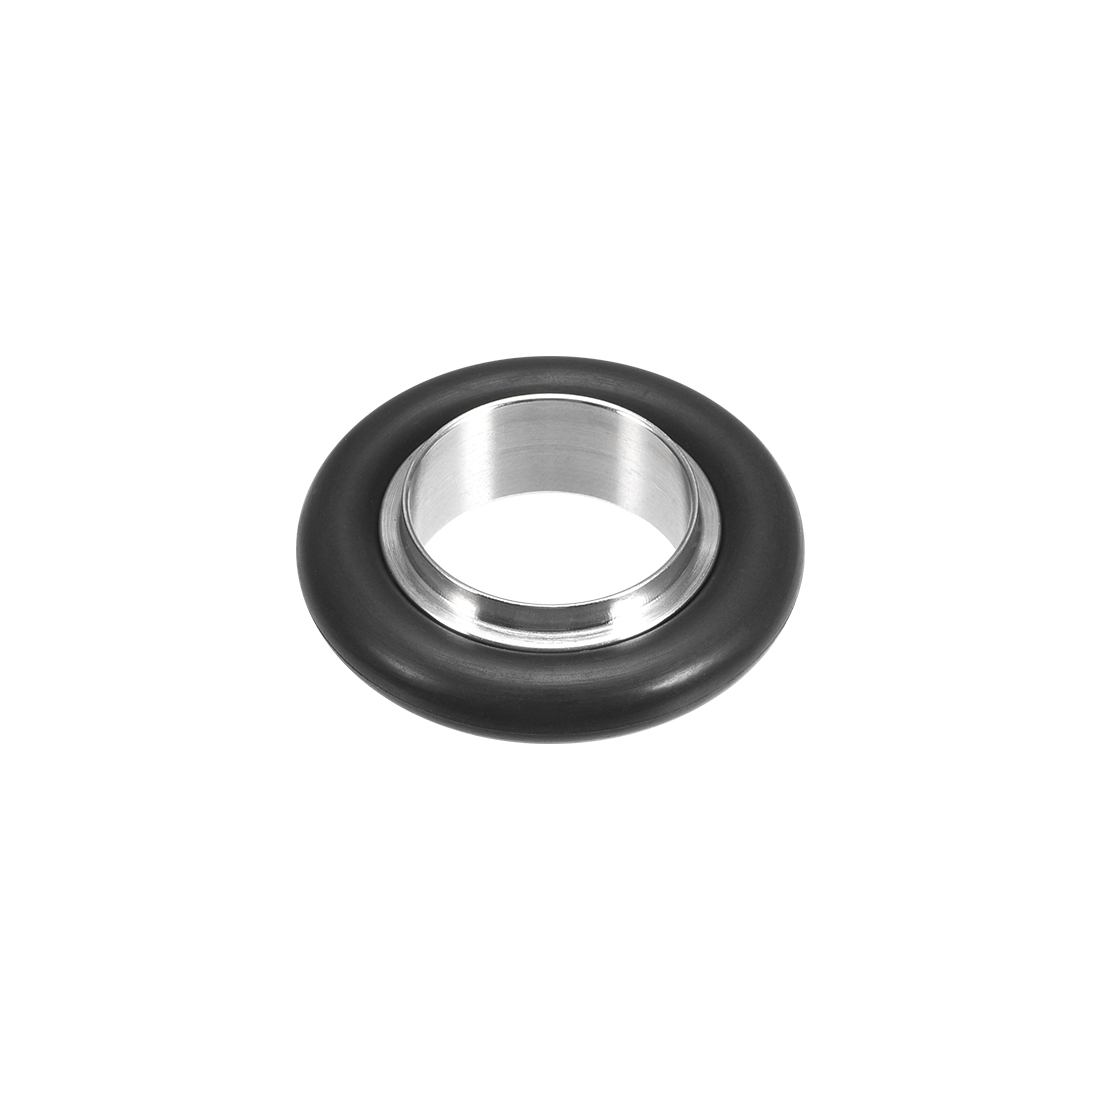 uxcell Centering Ring KF-16 Vacuum Fittings ISO-KF Flange 29.6mm x 15.6mm Fluororubber O-Ring